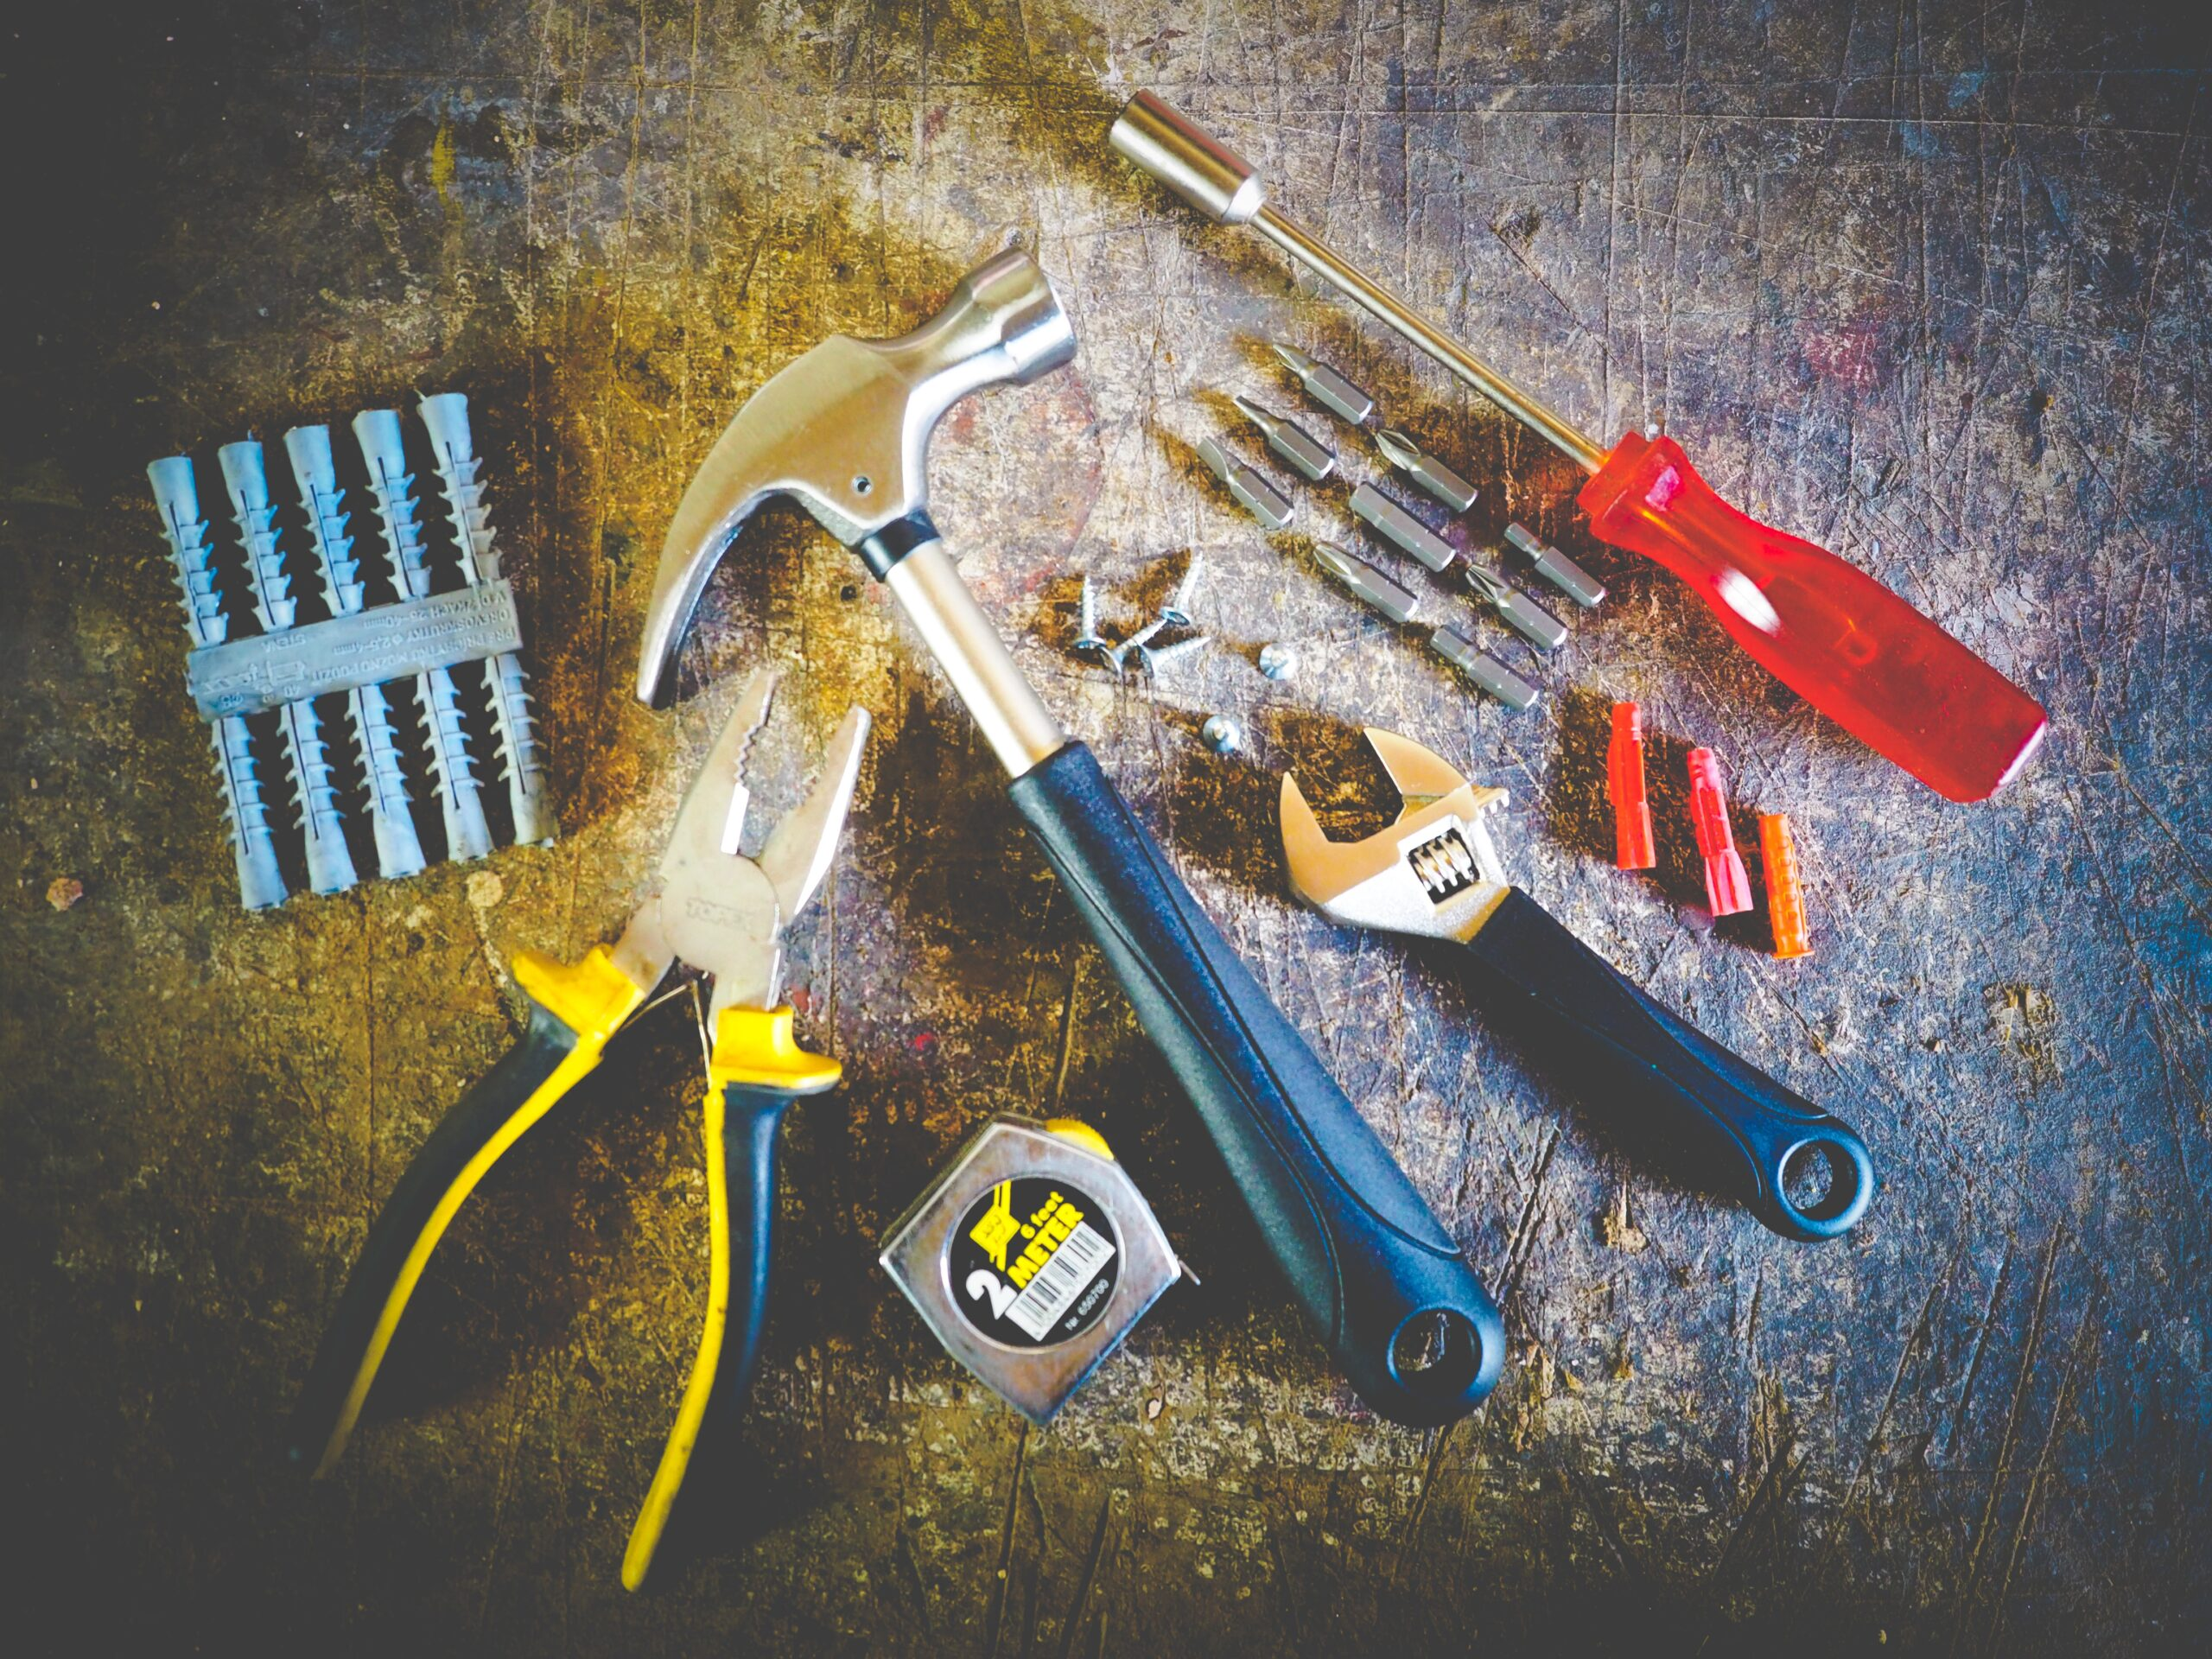 15 Must-Have Tools for Home-Expert Tips